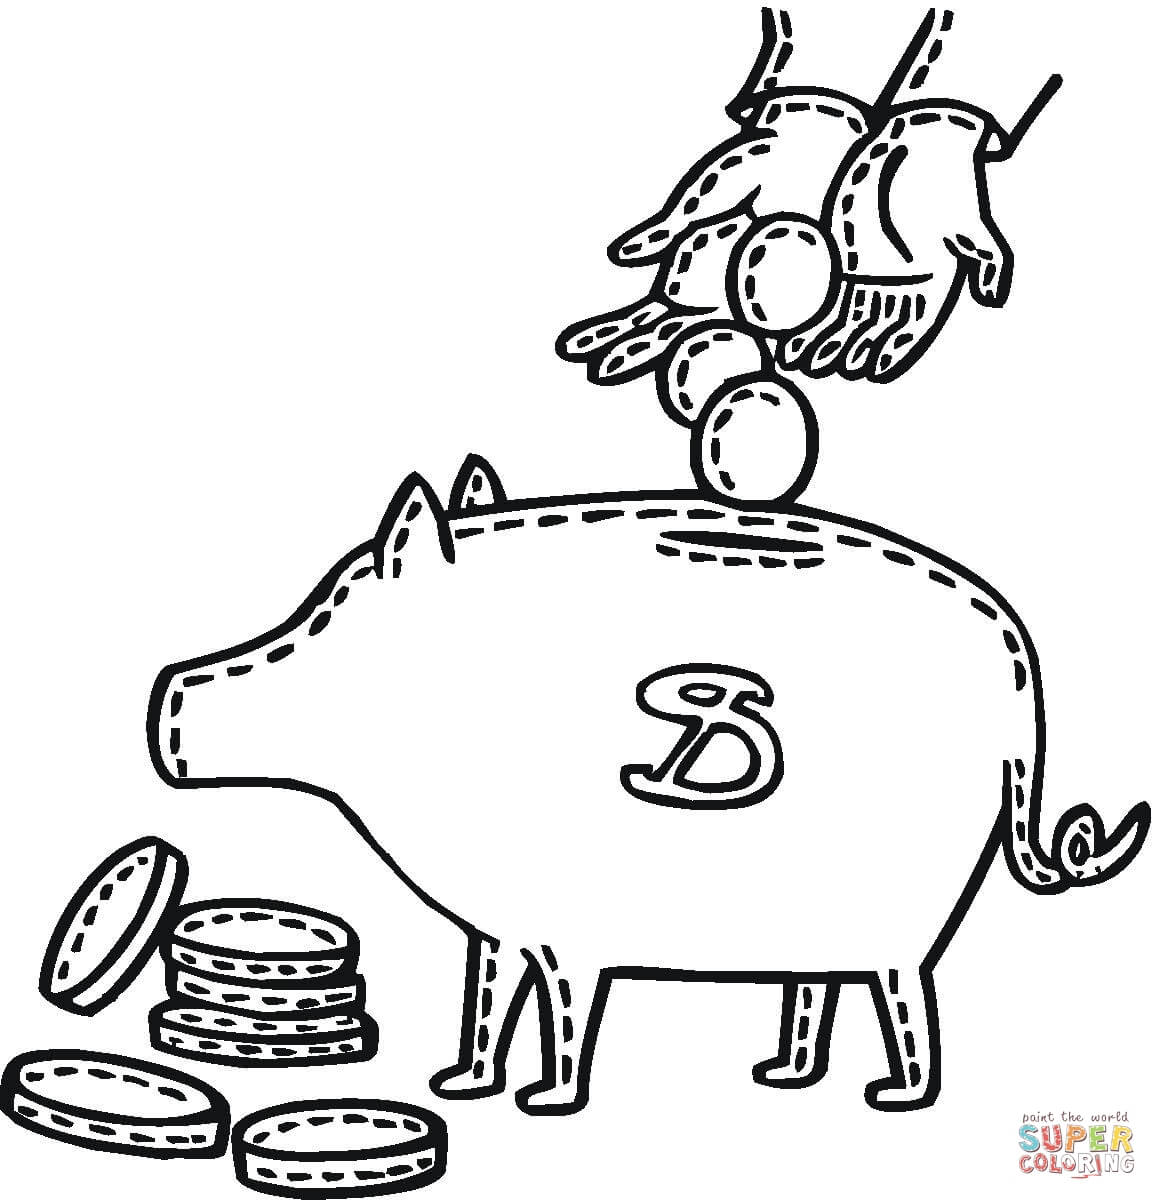 piggy bank coloring page coin going in piggy bank coloring page